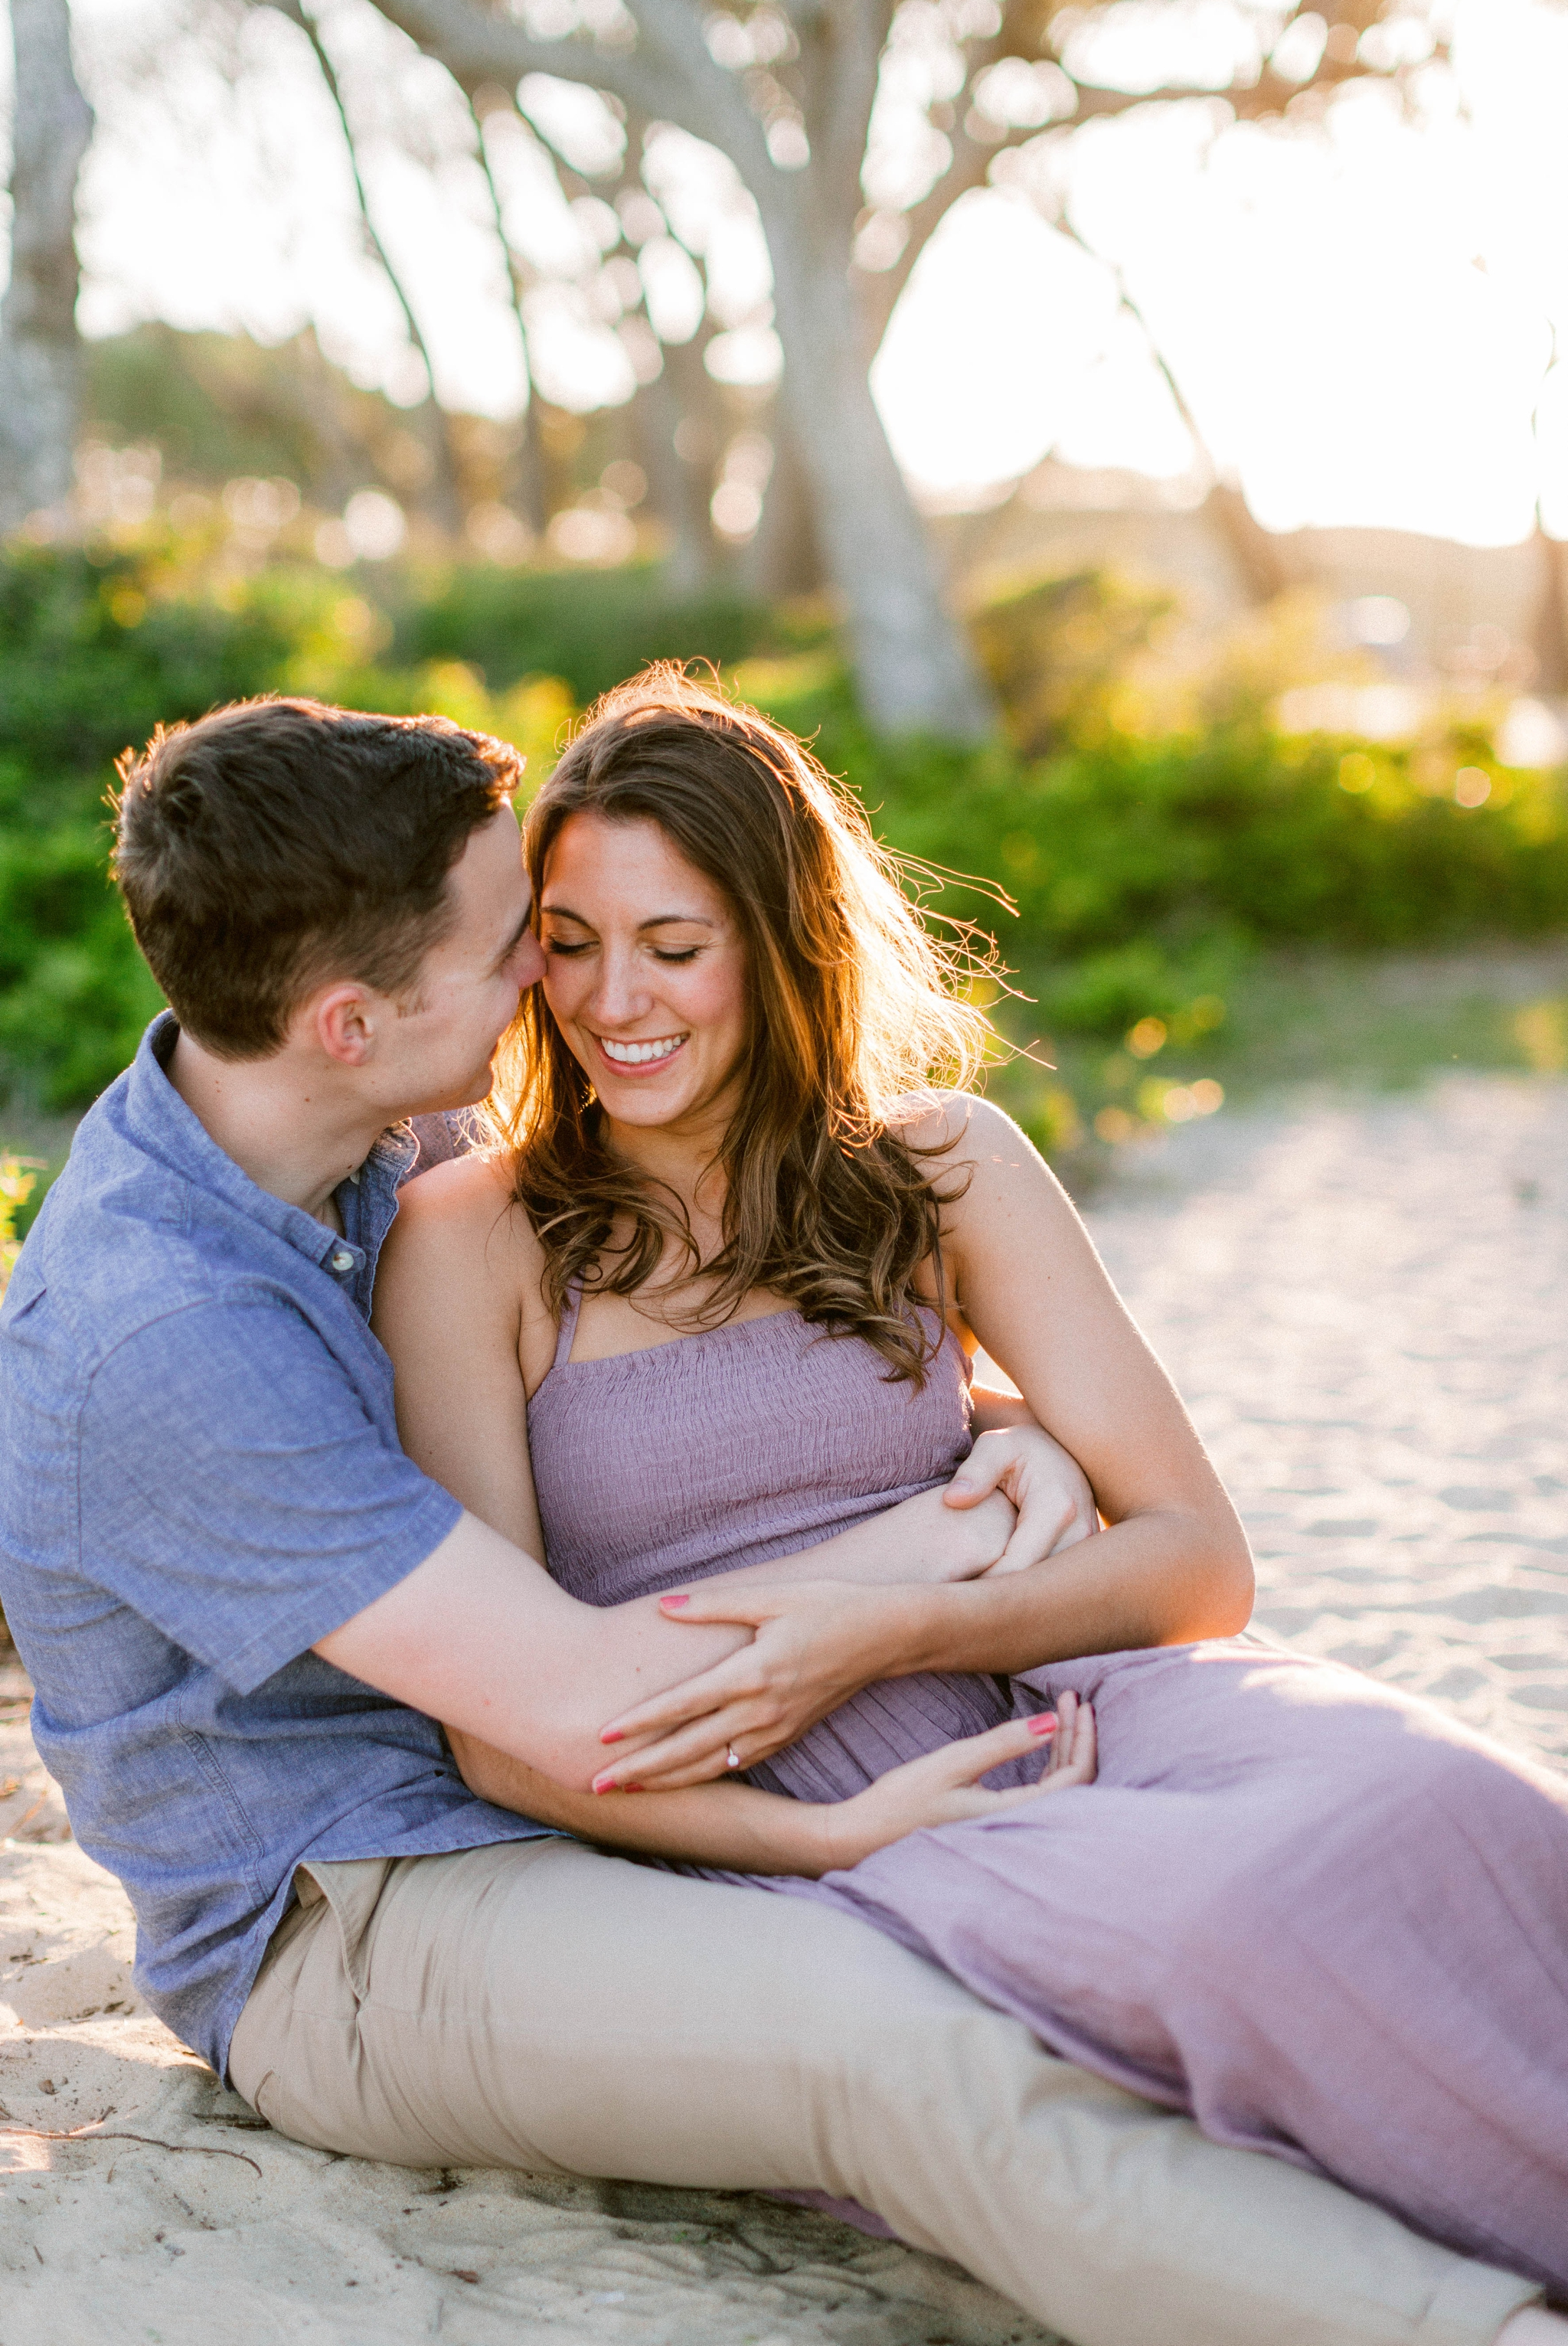 couple cuddeling on the beach in front of live oak trees with the sunset behind them - Woman is in a flowy pastel maxi dress - outdoor golden light session - engagement photographer in honolulu, oahu, hawaii - johanna dye photography